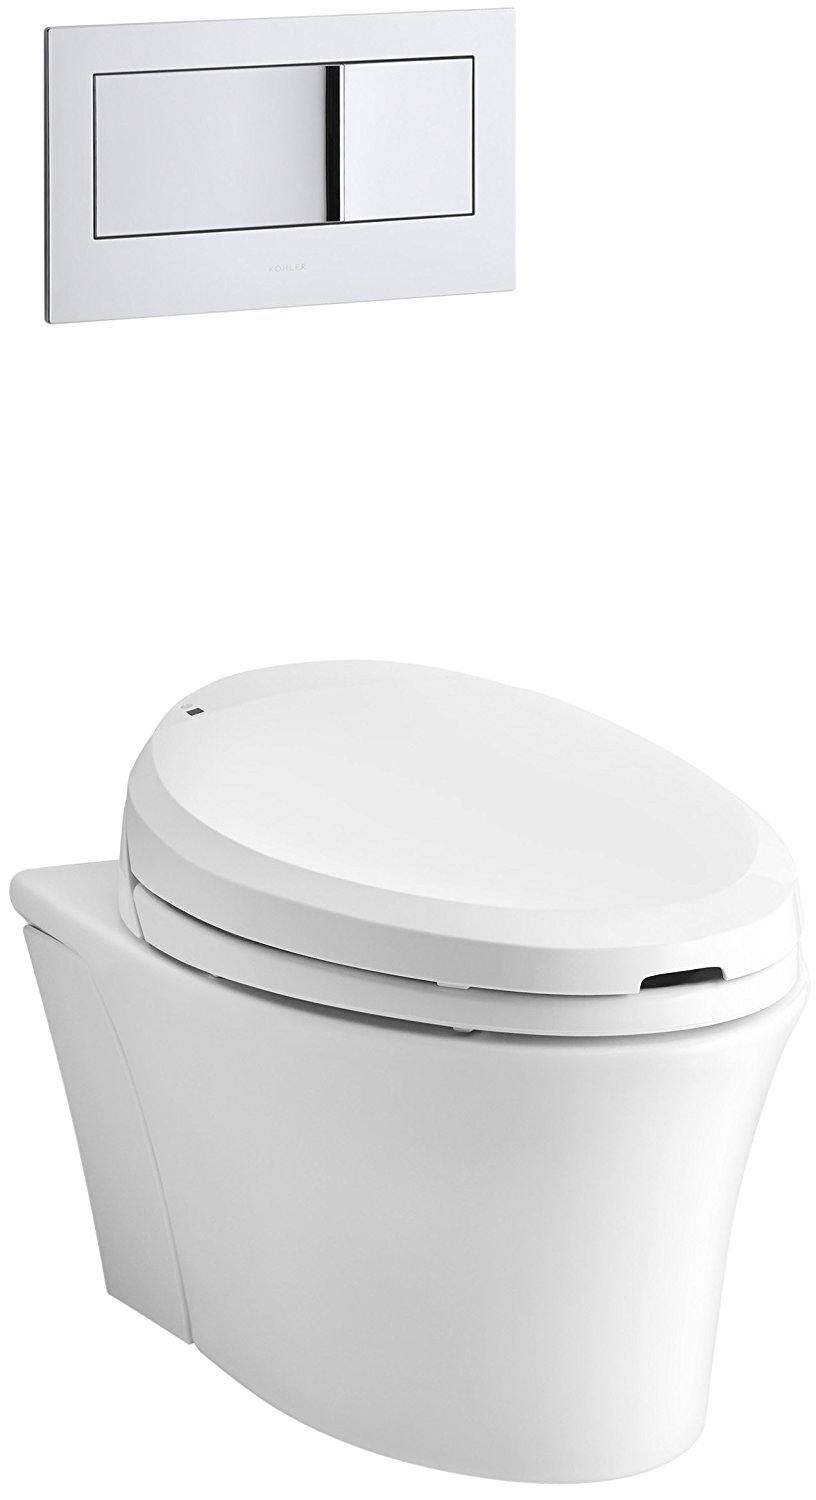 KOHLER K-6304-0 Veil Elongated Dual-Flush Wall-Hung Toilet with C3 Toilet Seat and Bidet Functionality, White, 1-Piece